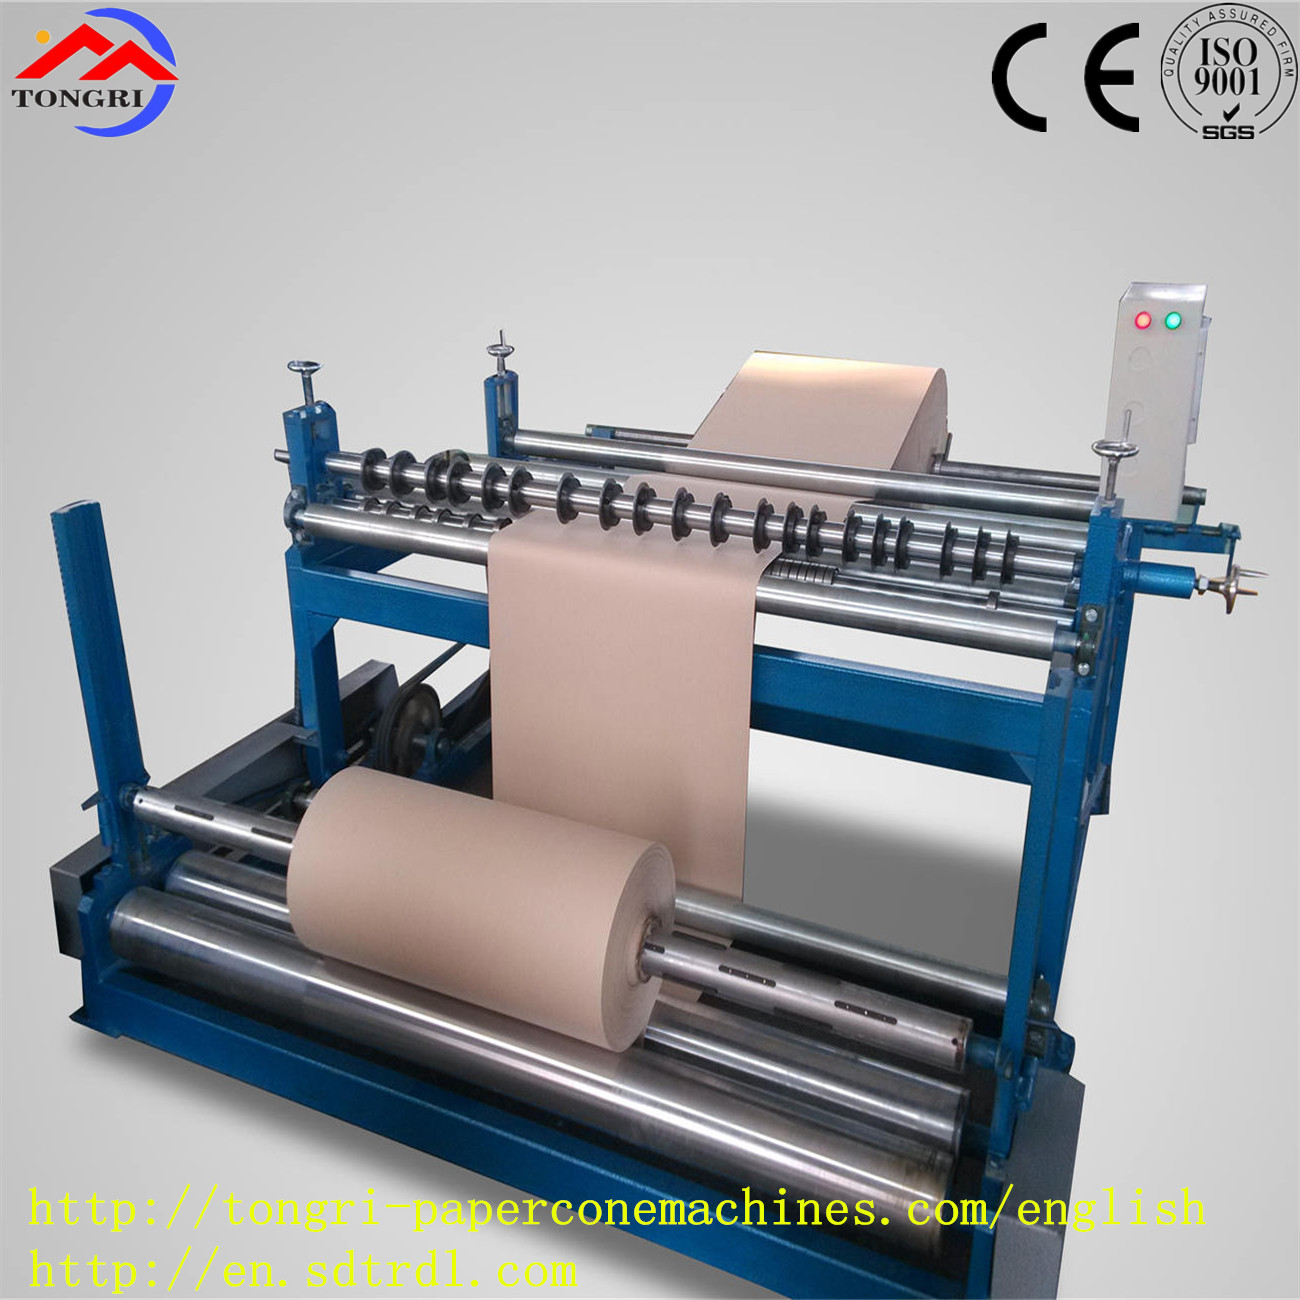 FQ-1600 paper slitting machine